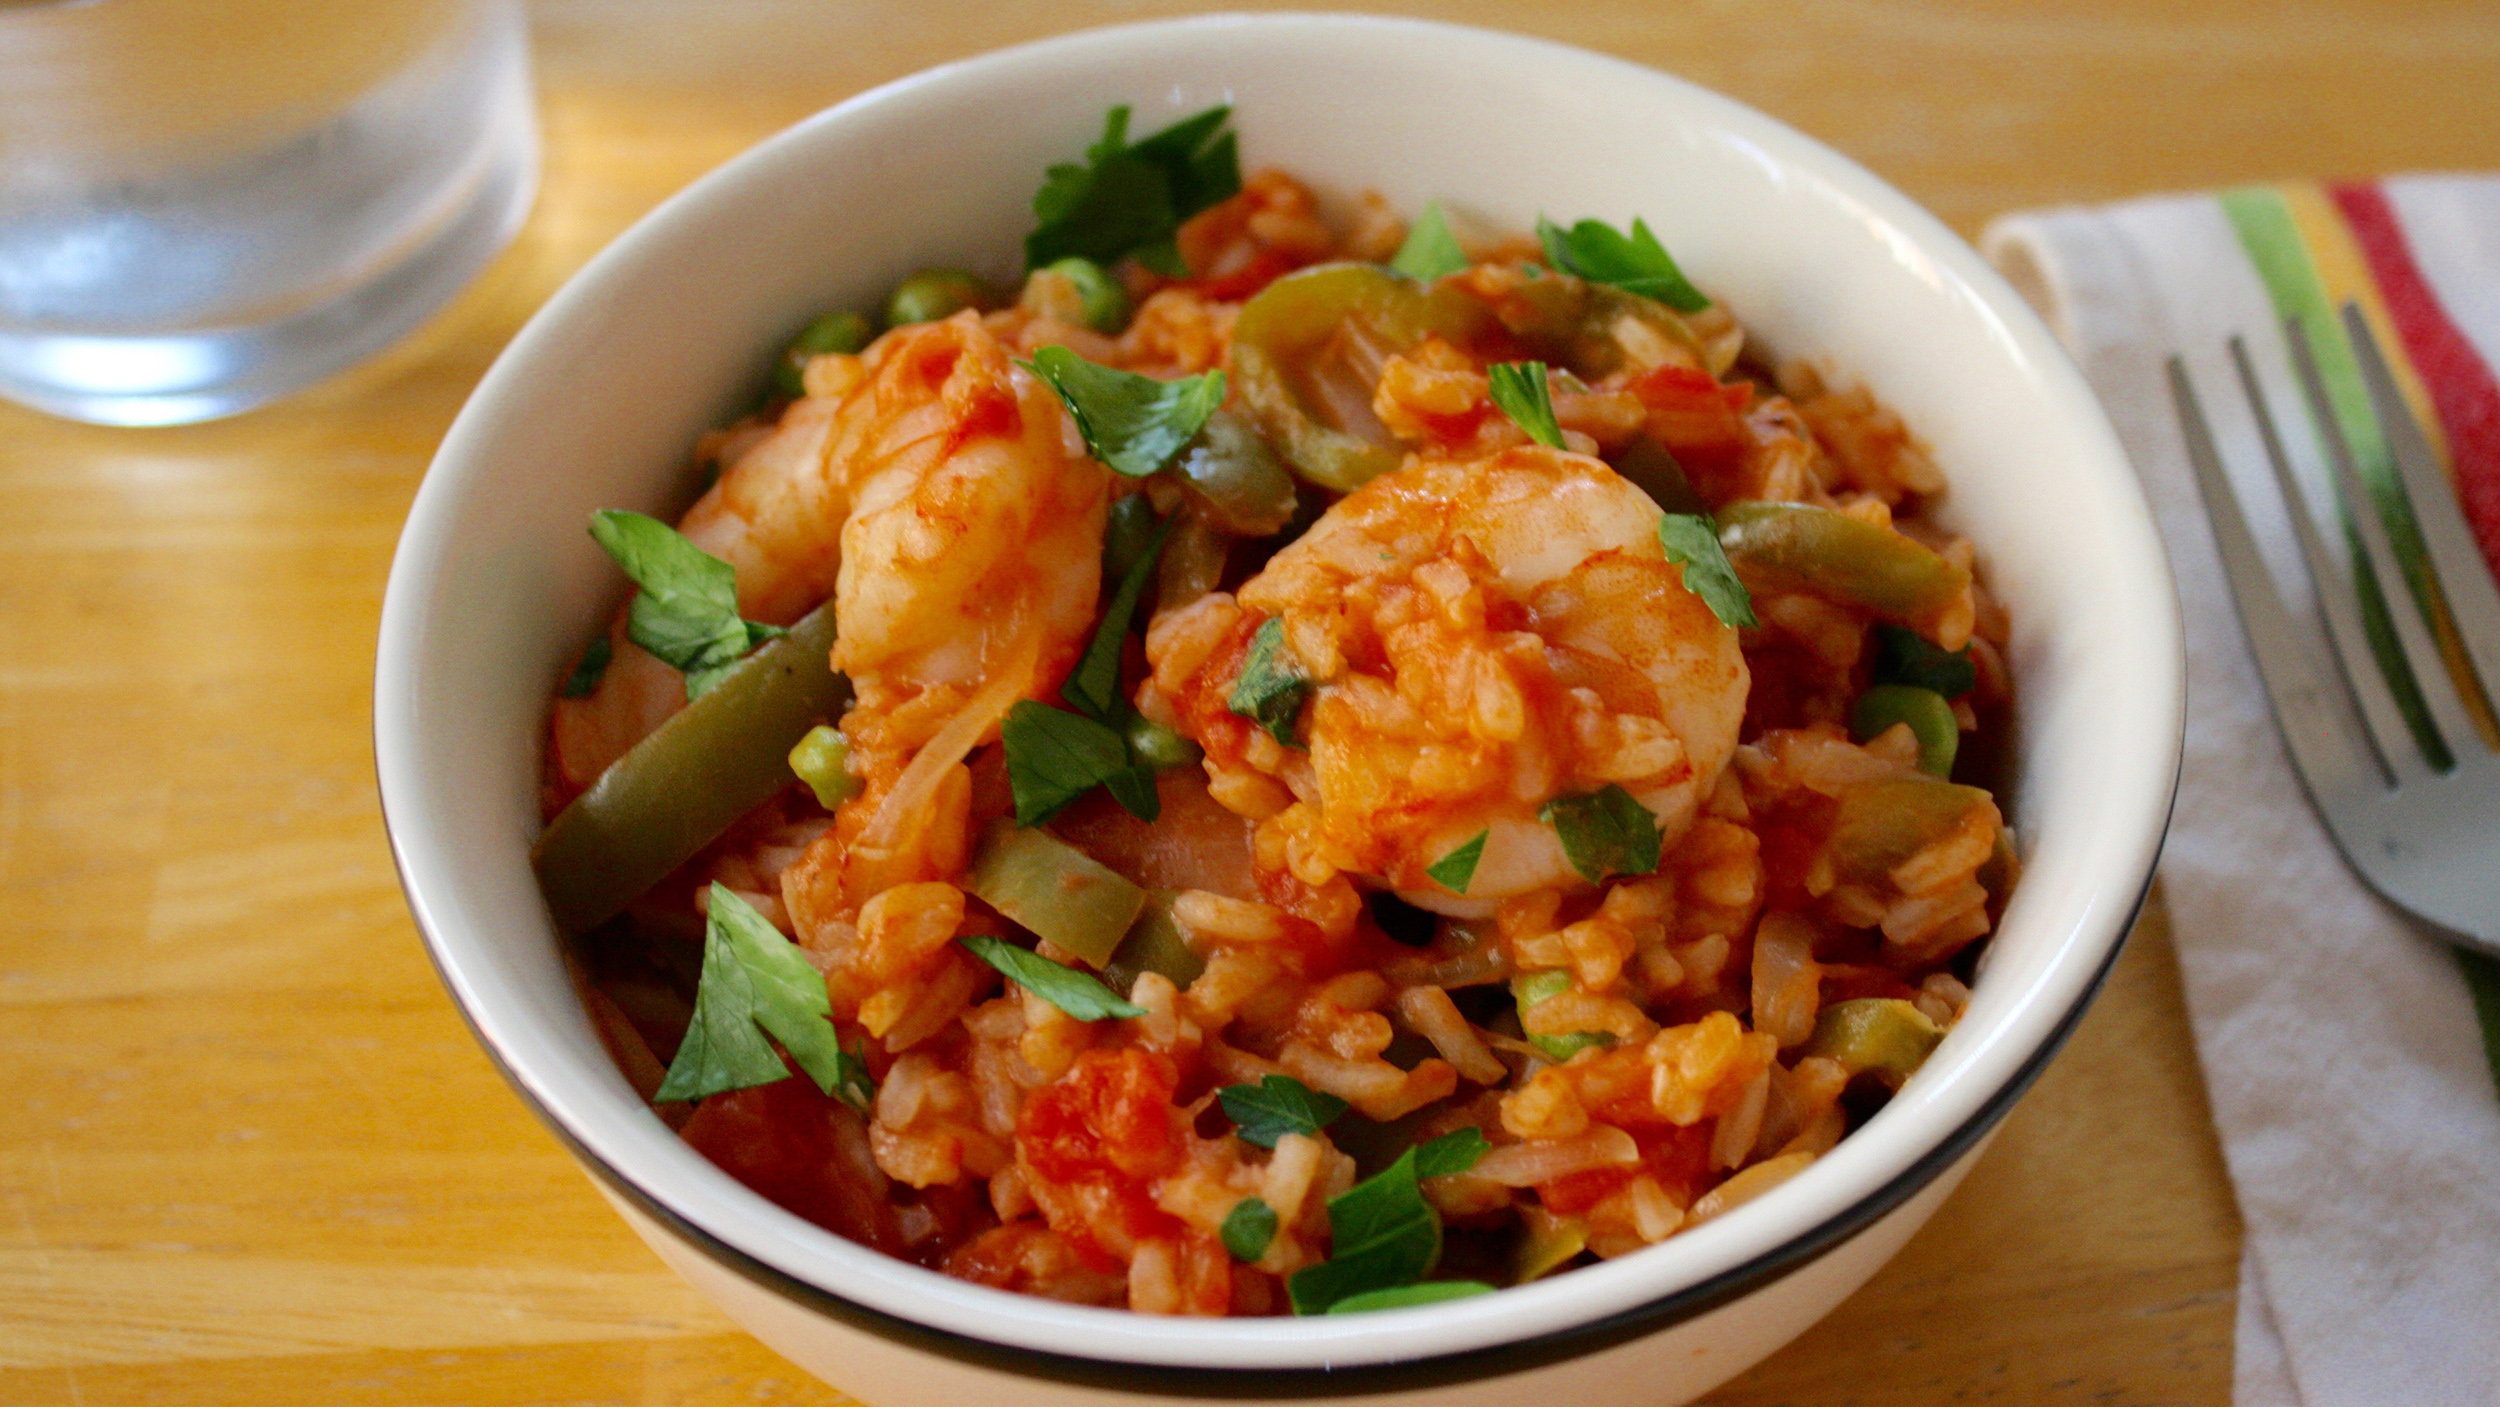 These 3 Easy One Pot Rice Meals Let You Skip The Messy Dinner Cleanup